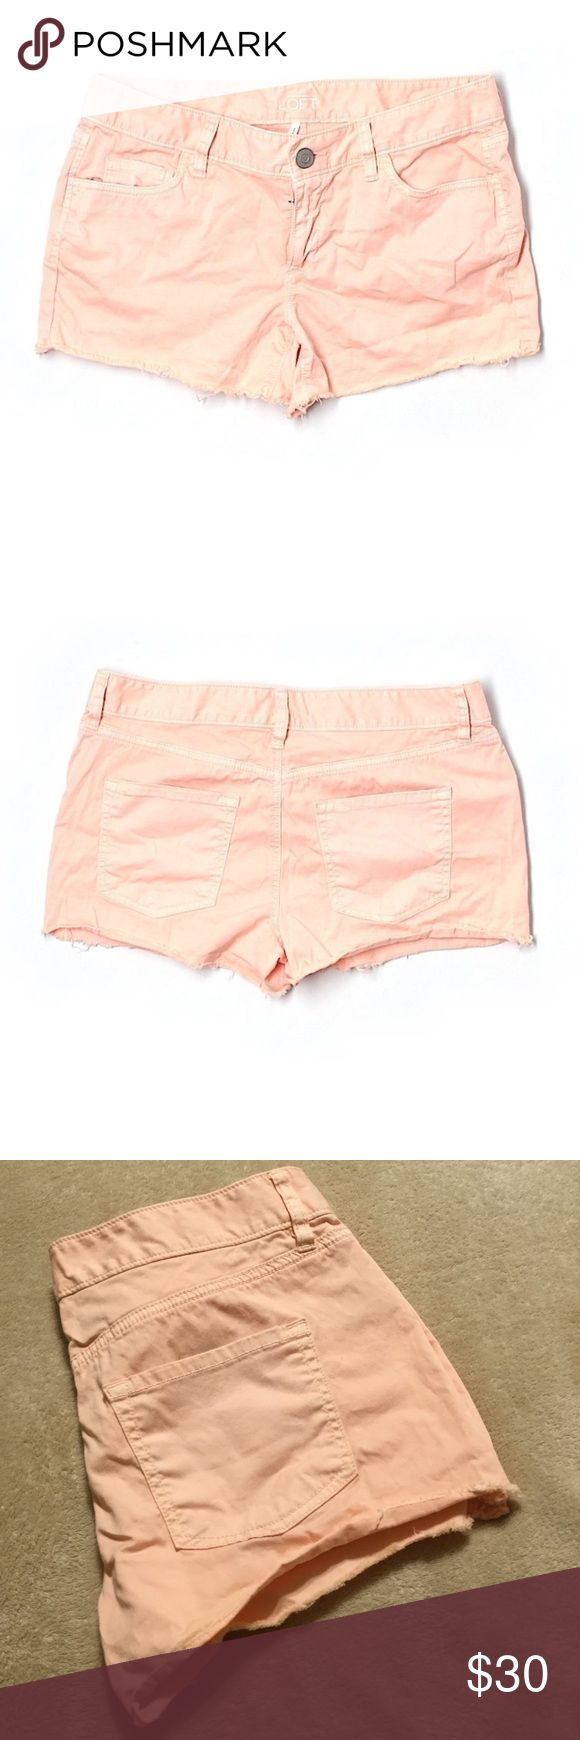 Peach shorts Peach low rise shorts 3 inch inseam. LOFT Shorts